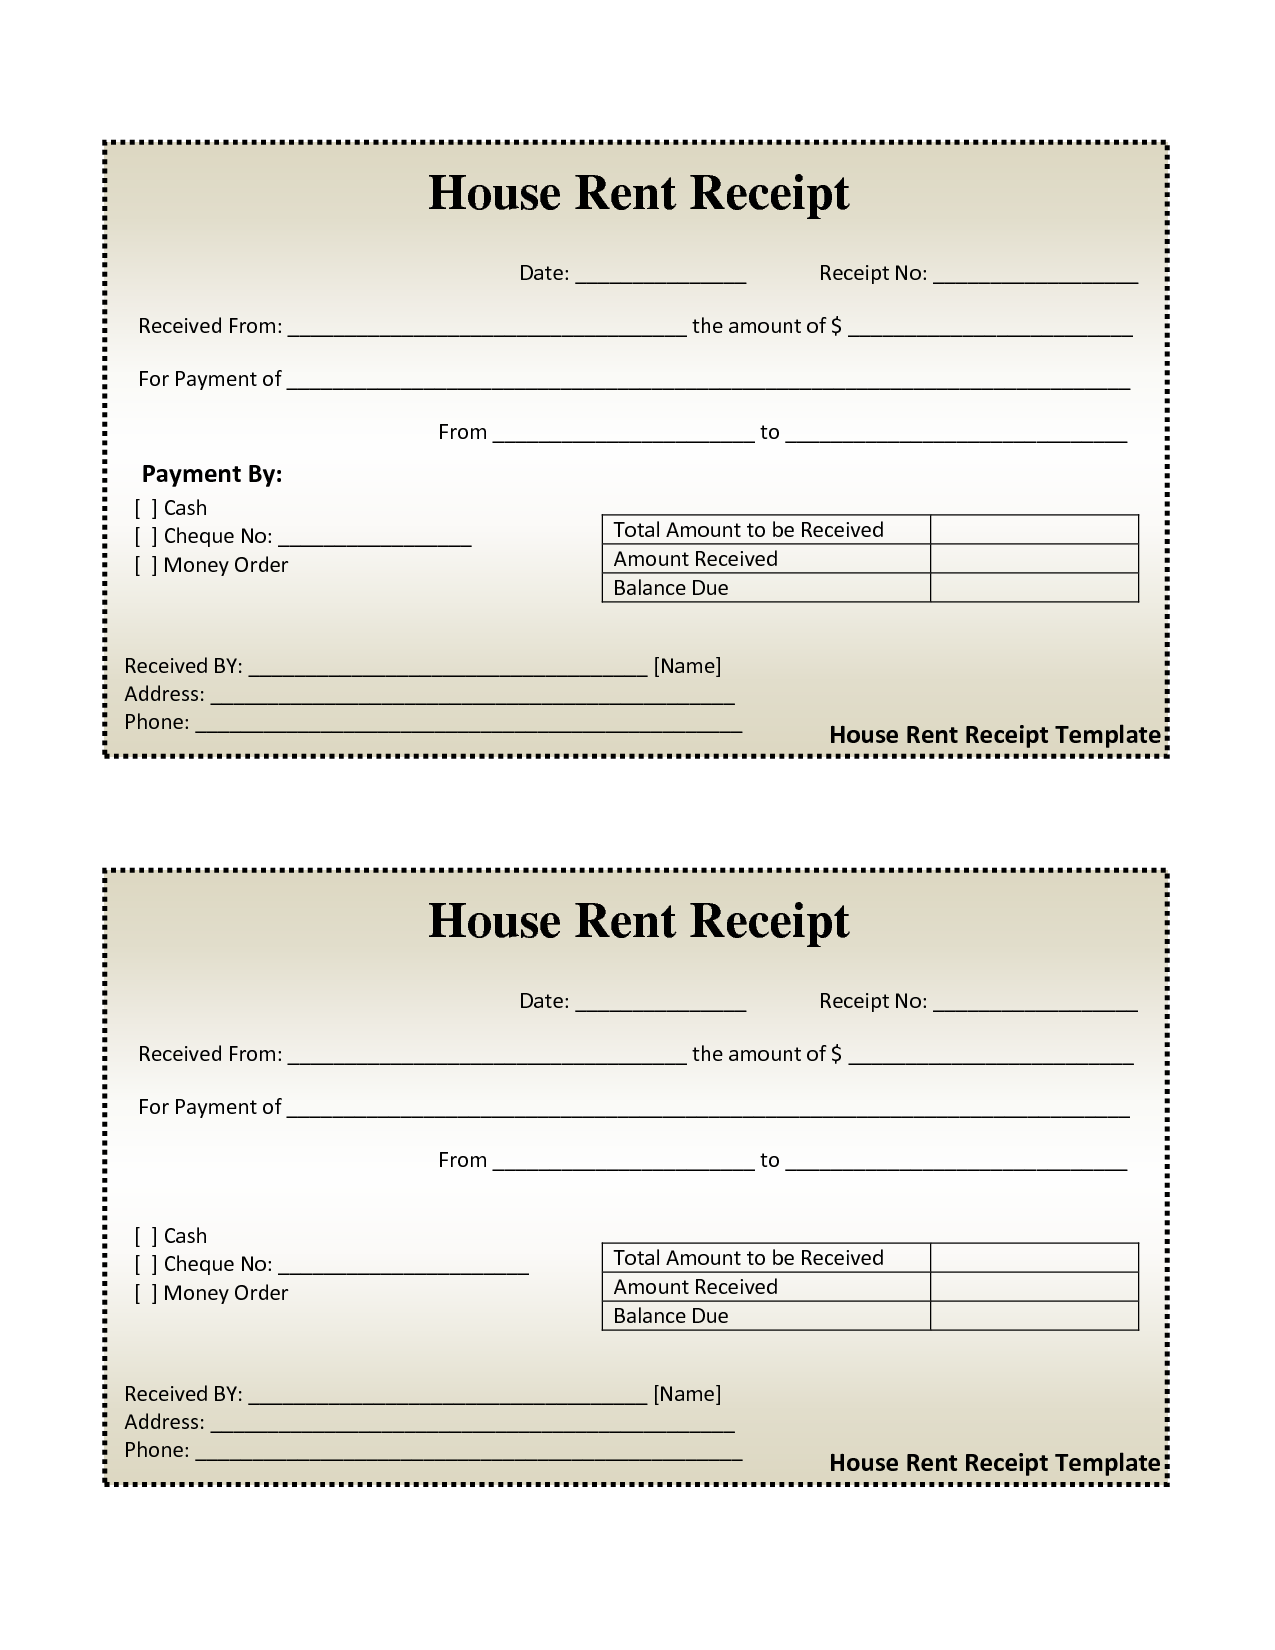 free house rental invoice | House Rent Receipt Template - DOC ...